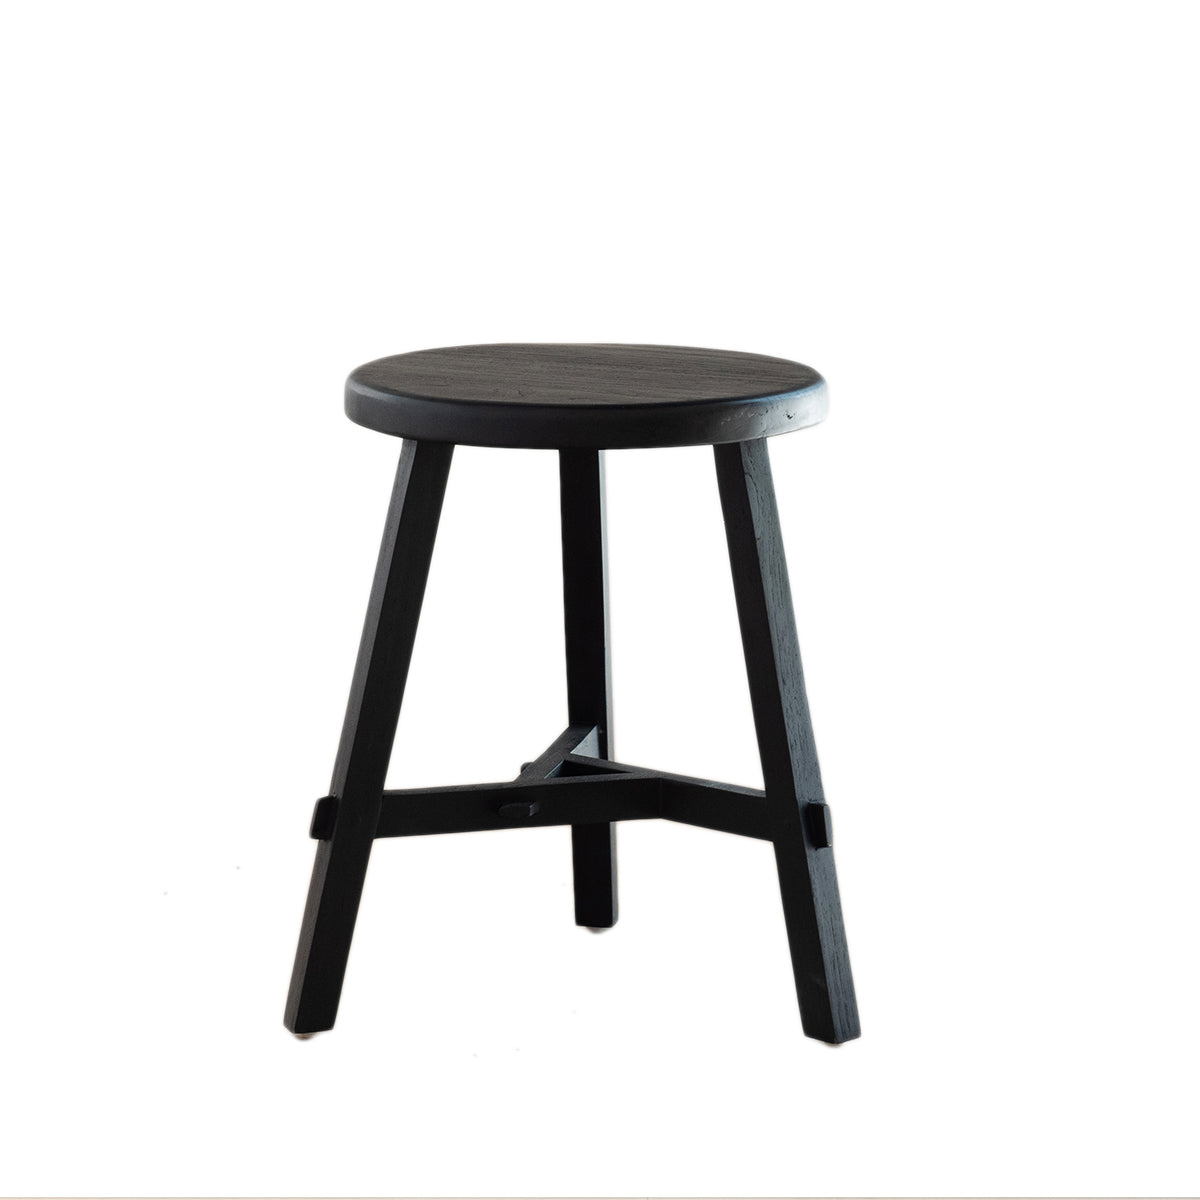 Black Recycled Wood Stool